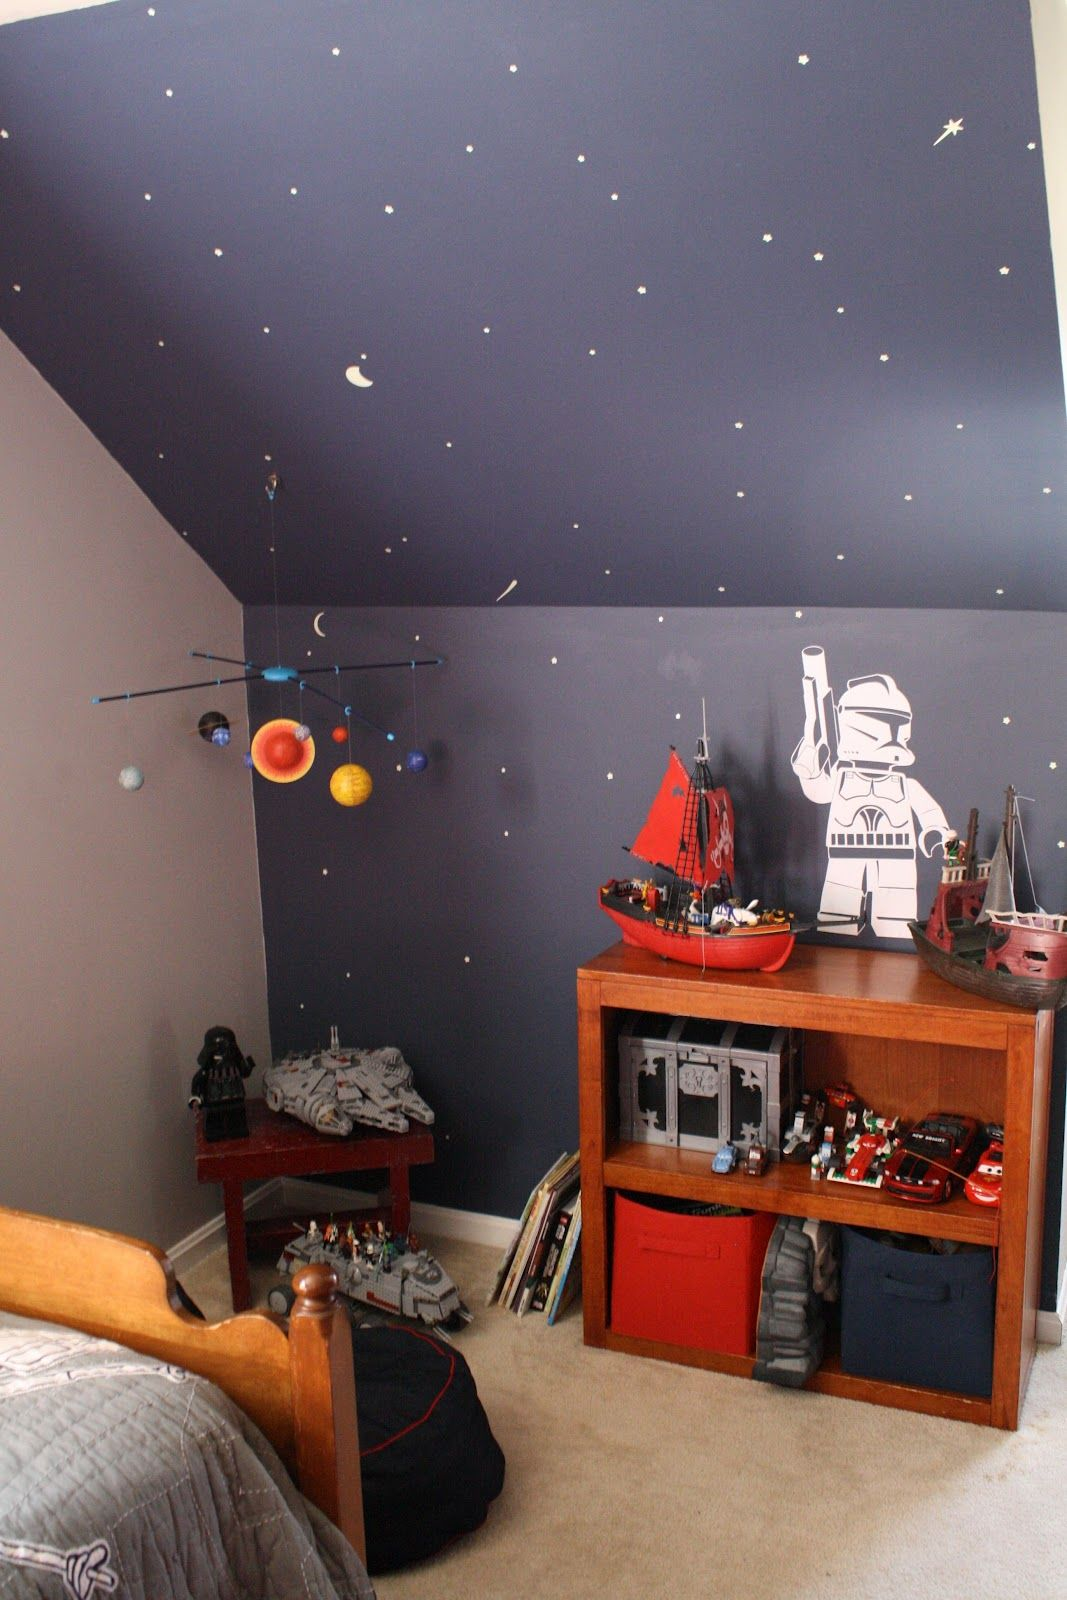 Remodelaholic » Blog Archive Designing Kids Rooms For A Boy And Girl · Star  Wars ...